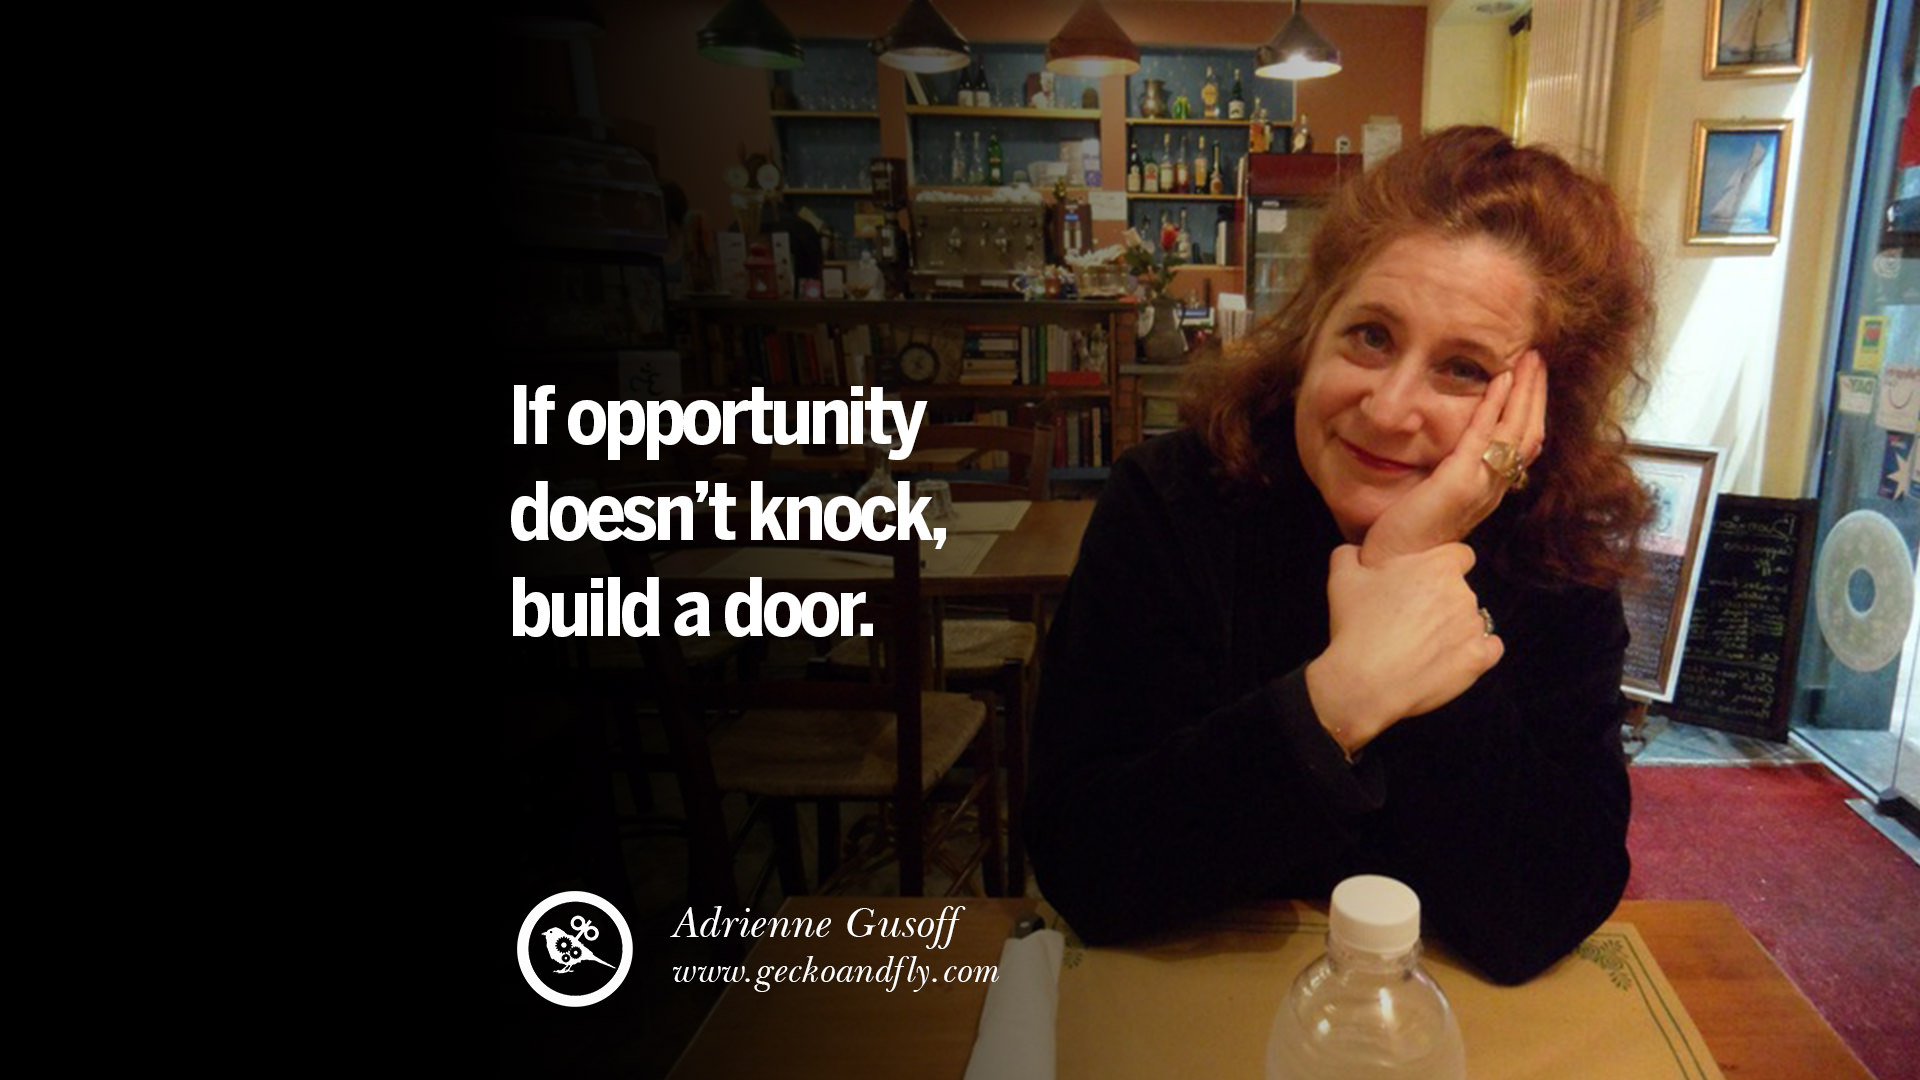 business opportunity quotes